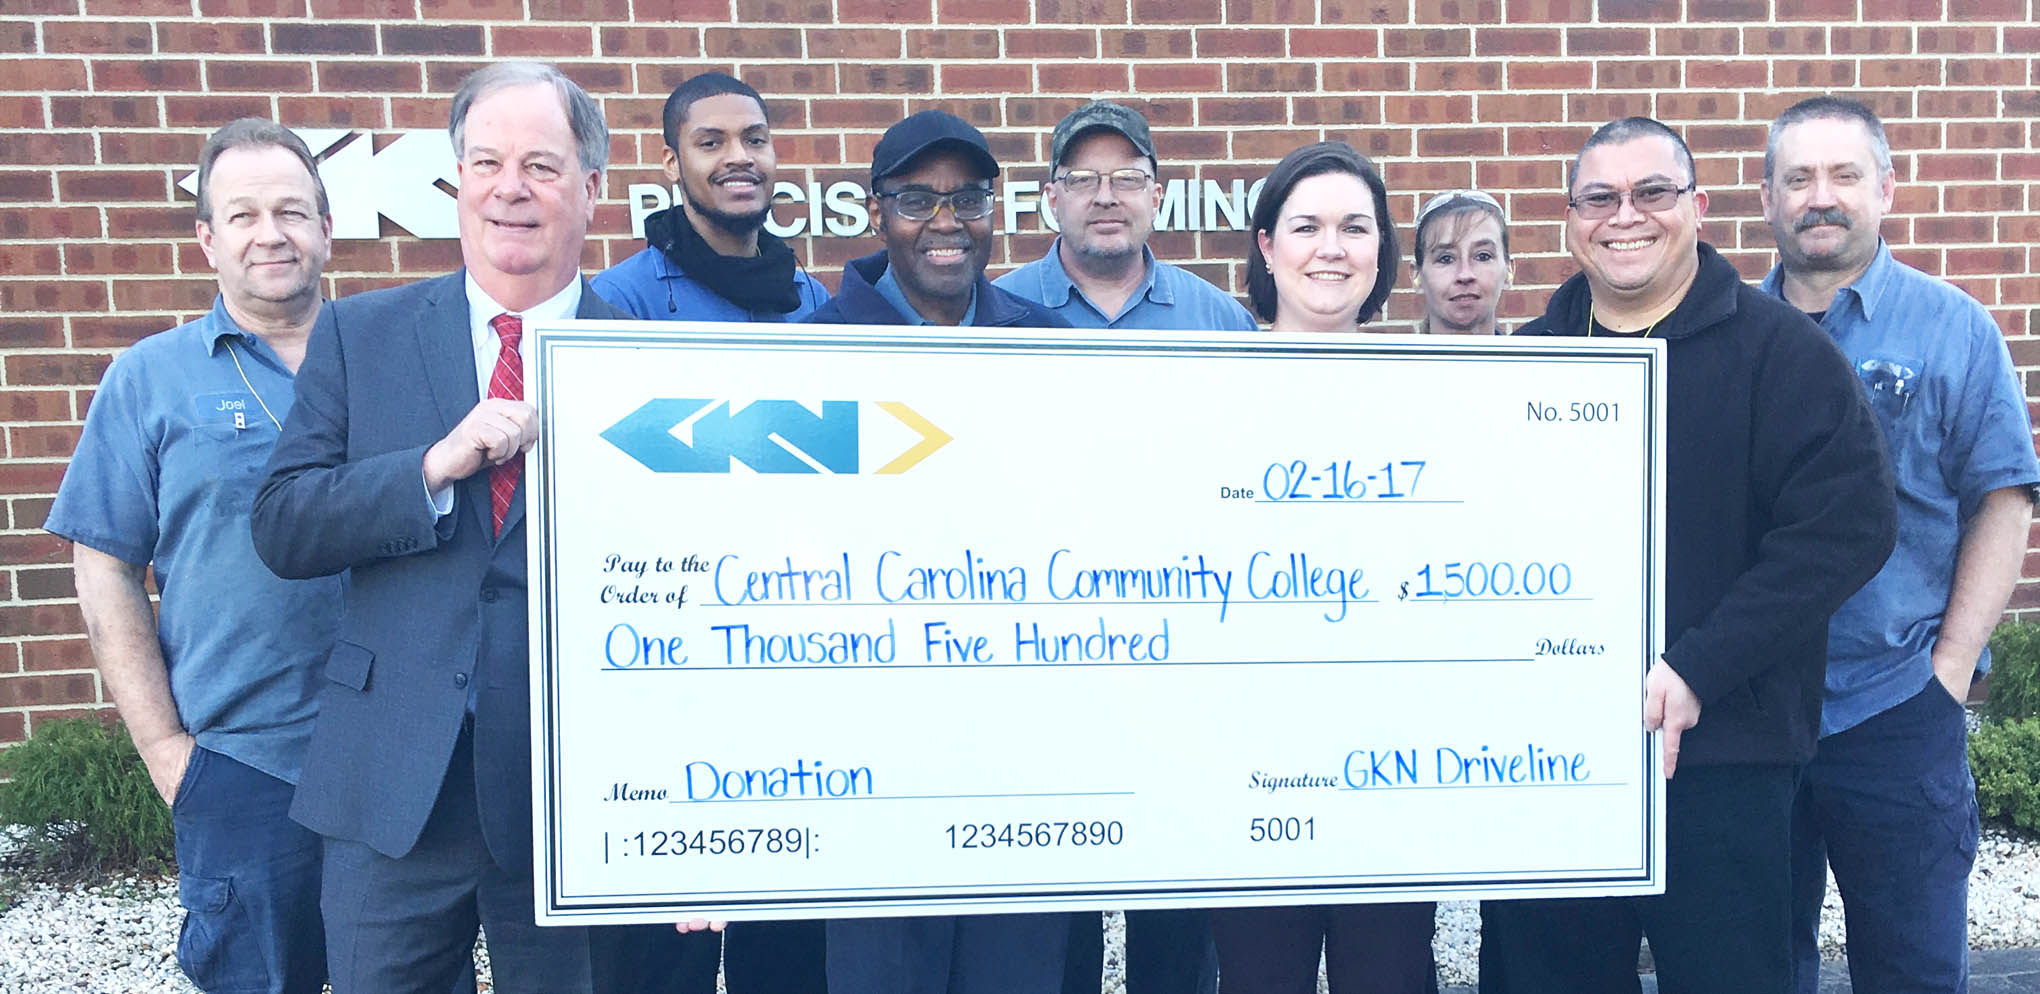 "Click to enlarge,  The Central Carolina Community College Foundation has received a $1,500 contribution from GKN Driveline of Sanford. Accepting the check is CCCC President Dr. T. Eston Marchant (second from left) and CCCC Foundation Executive Director Emily Hare (sixth from left). ""The CCCC Foundation is appreciative for GKN Driveline's continued support,"" said Hare. Also pictured are GKN employees. The CCCC Foundation is a 501(c)(3) charitable organization affiliated with, but independent of, Central Carolina Community College. It receives donations of money and equipment on behalf of the college and uses them to promote its educational mission and assist students through scholarships and grants. For more information on the CCCC Foundation, contact Foundation Executive Director Emily Hare at 919-718-7230 or by email at ehare@cccc.edu."